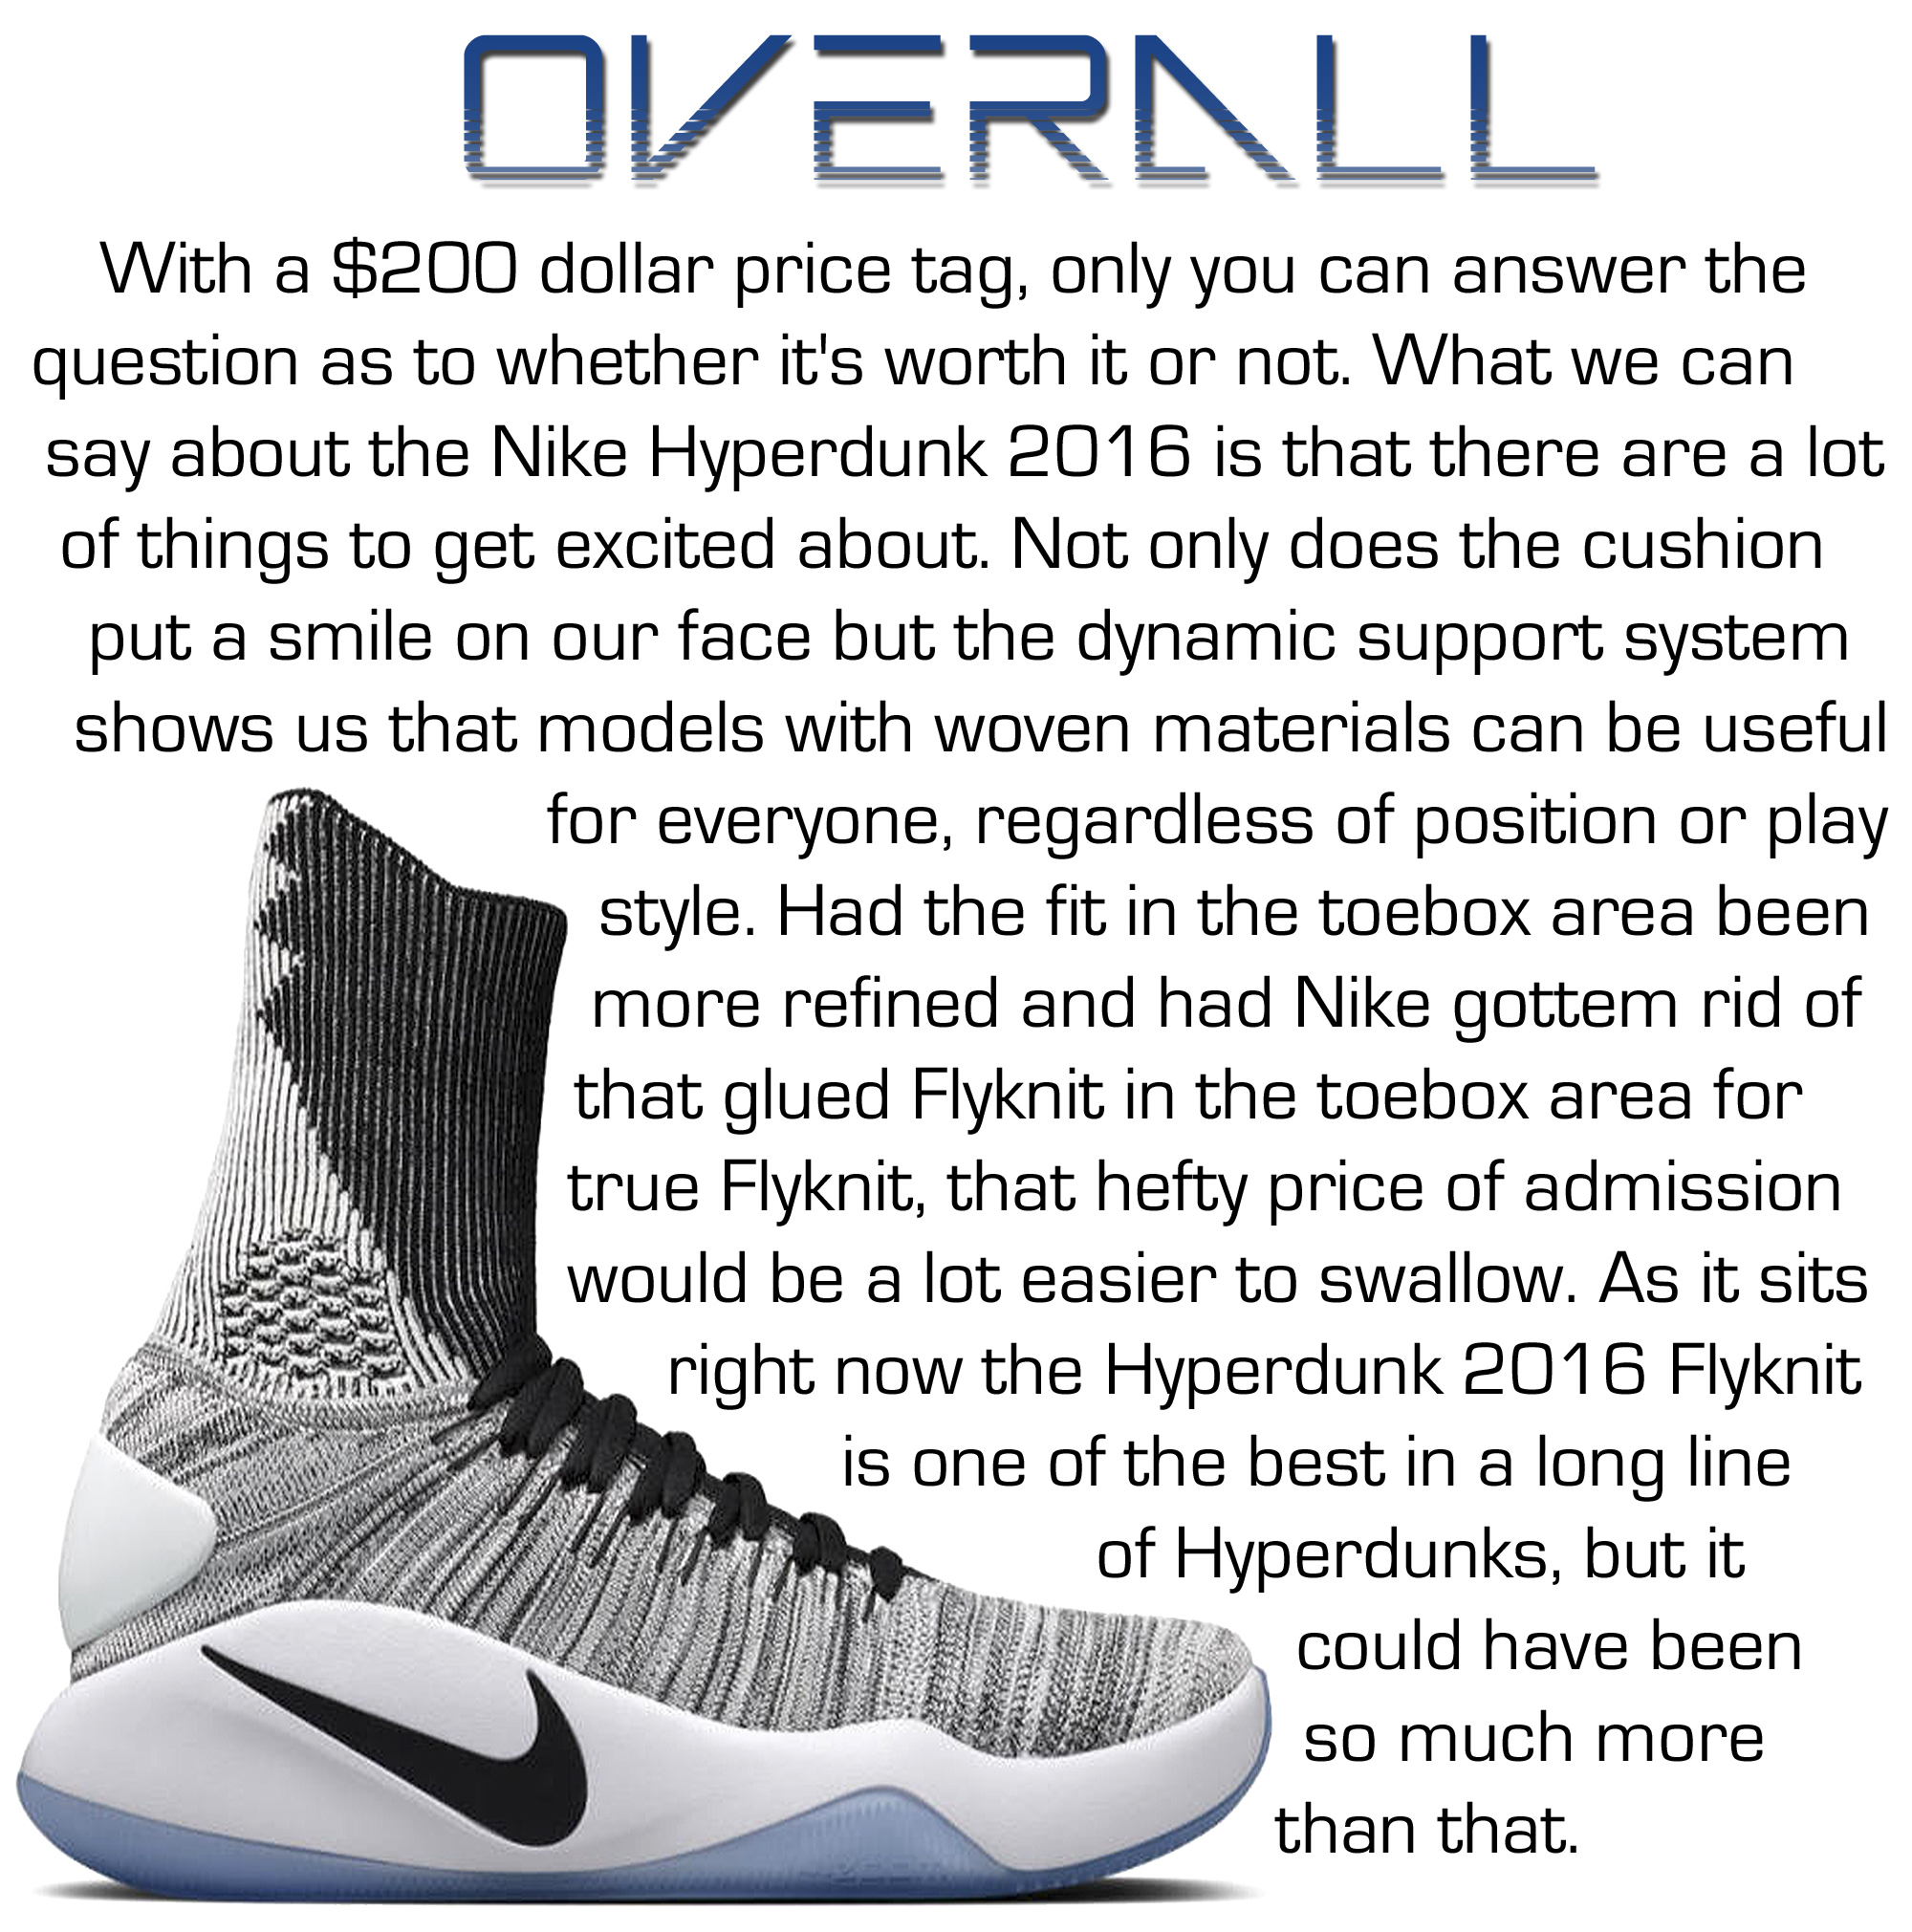 Hyperdunk 2016 Flyknit Performance Review - Overall